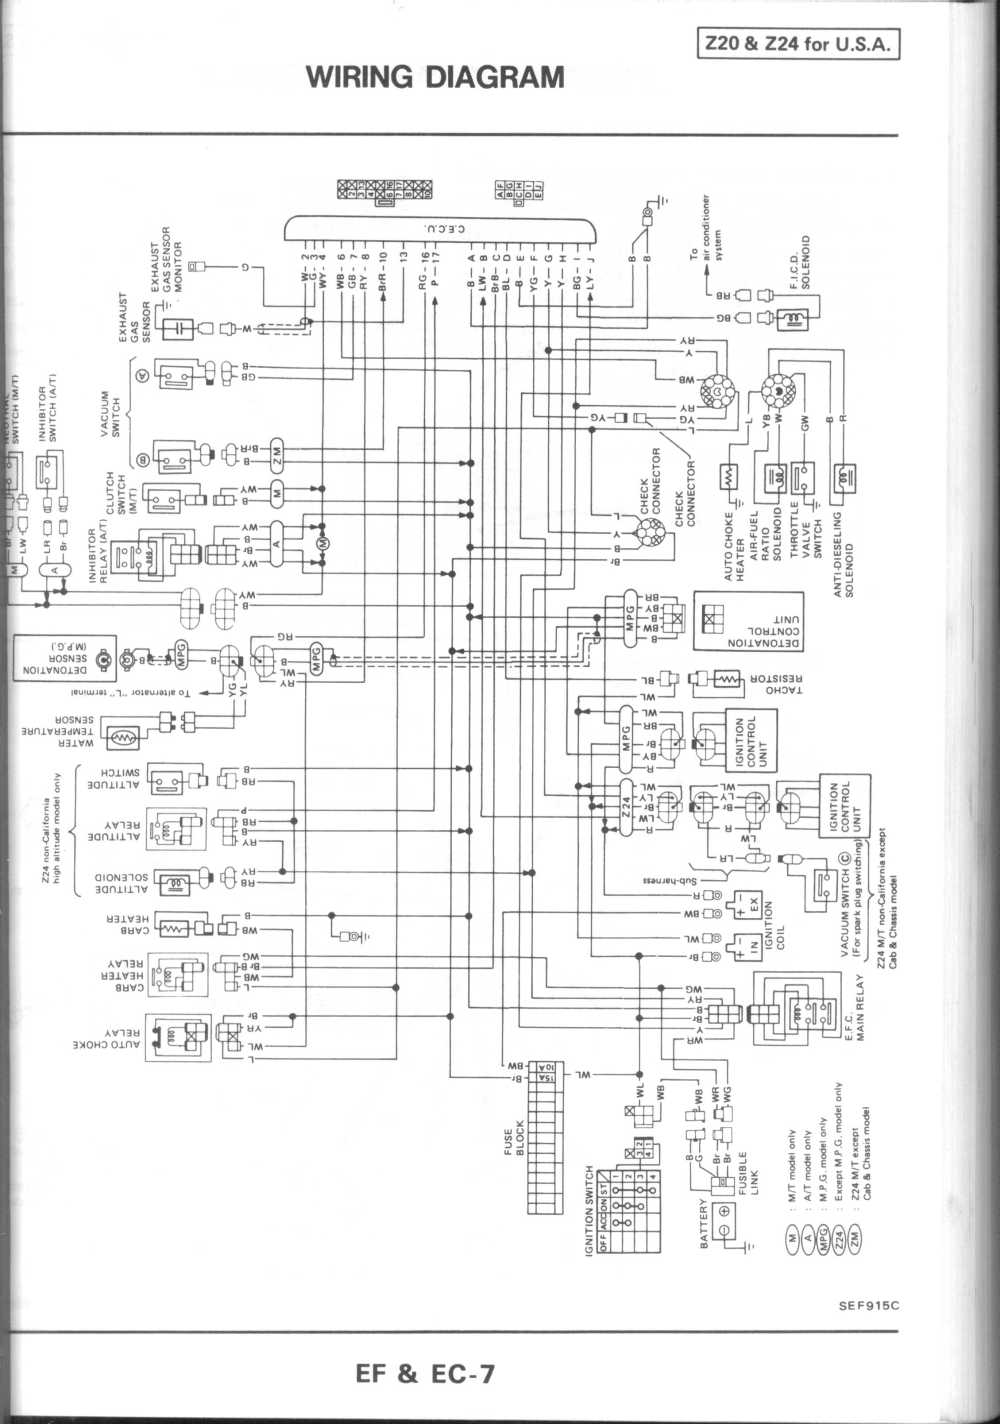 medium resolution of 1987 d21 fuse box data wiring diagram schema1987 nissan pathfinder fuse box simple wiring diagram schema